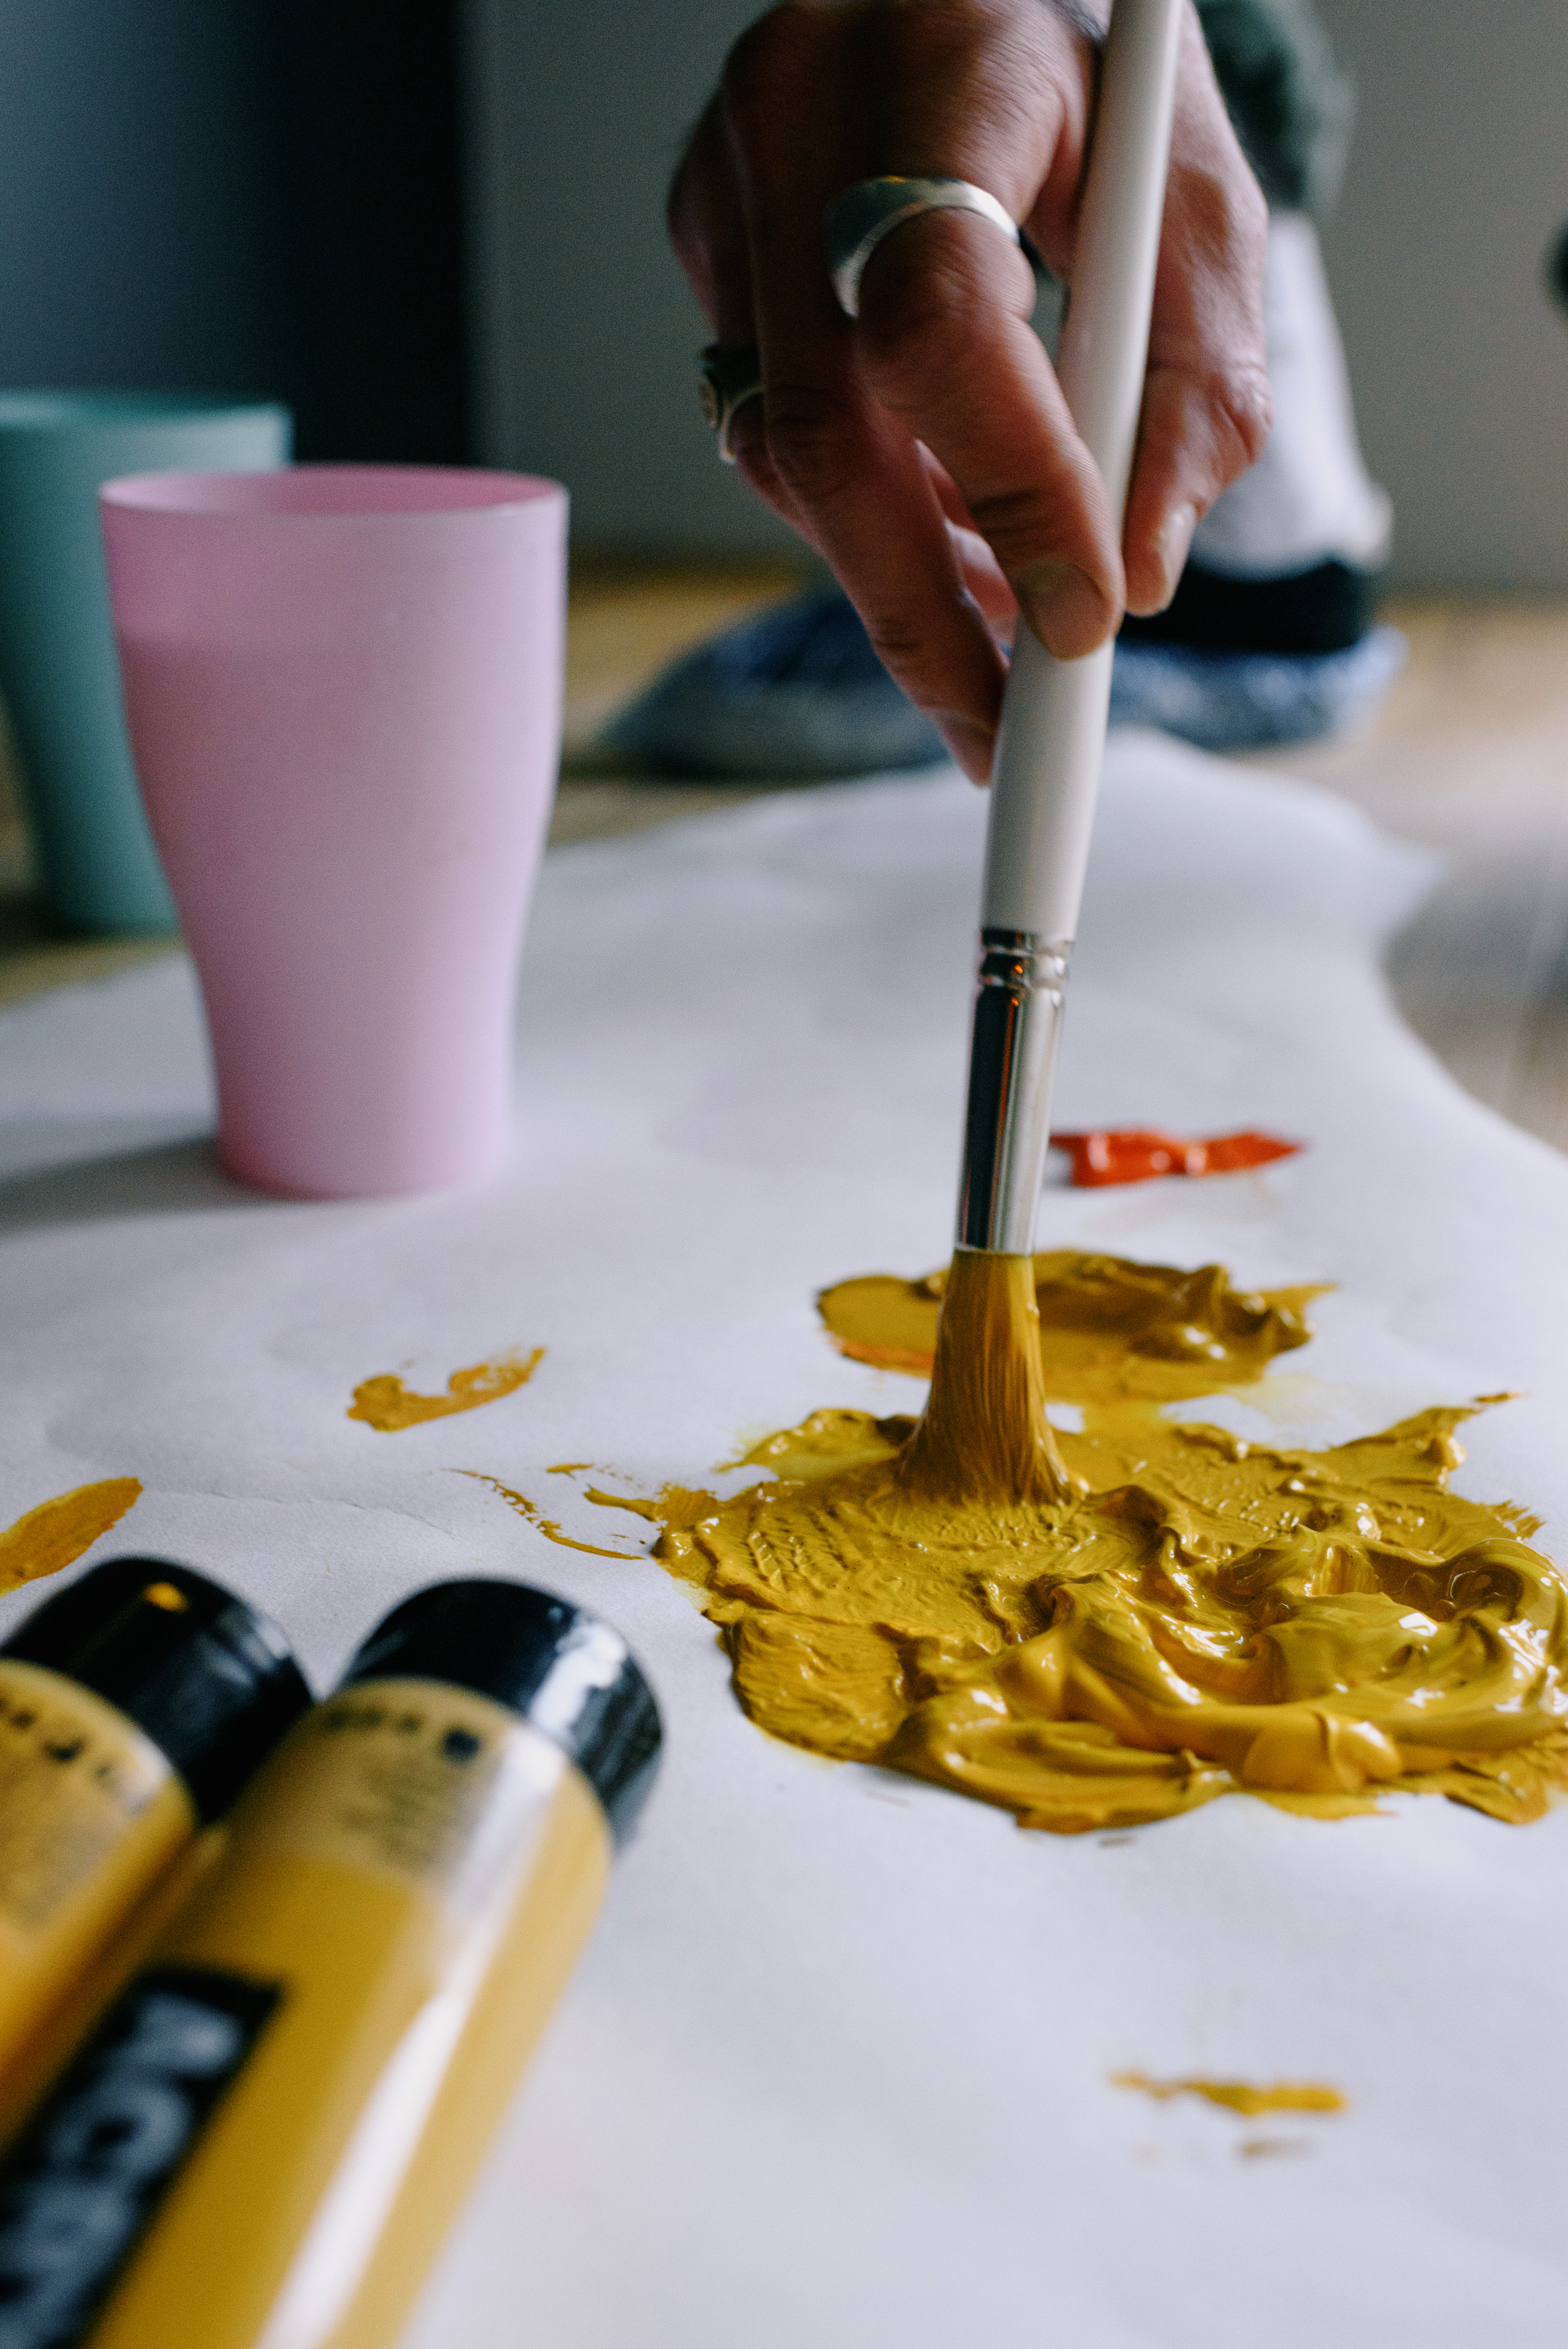 crop faceless artist sopping paintbrush in yellow paint